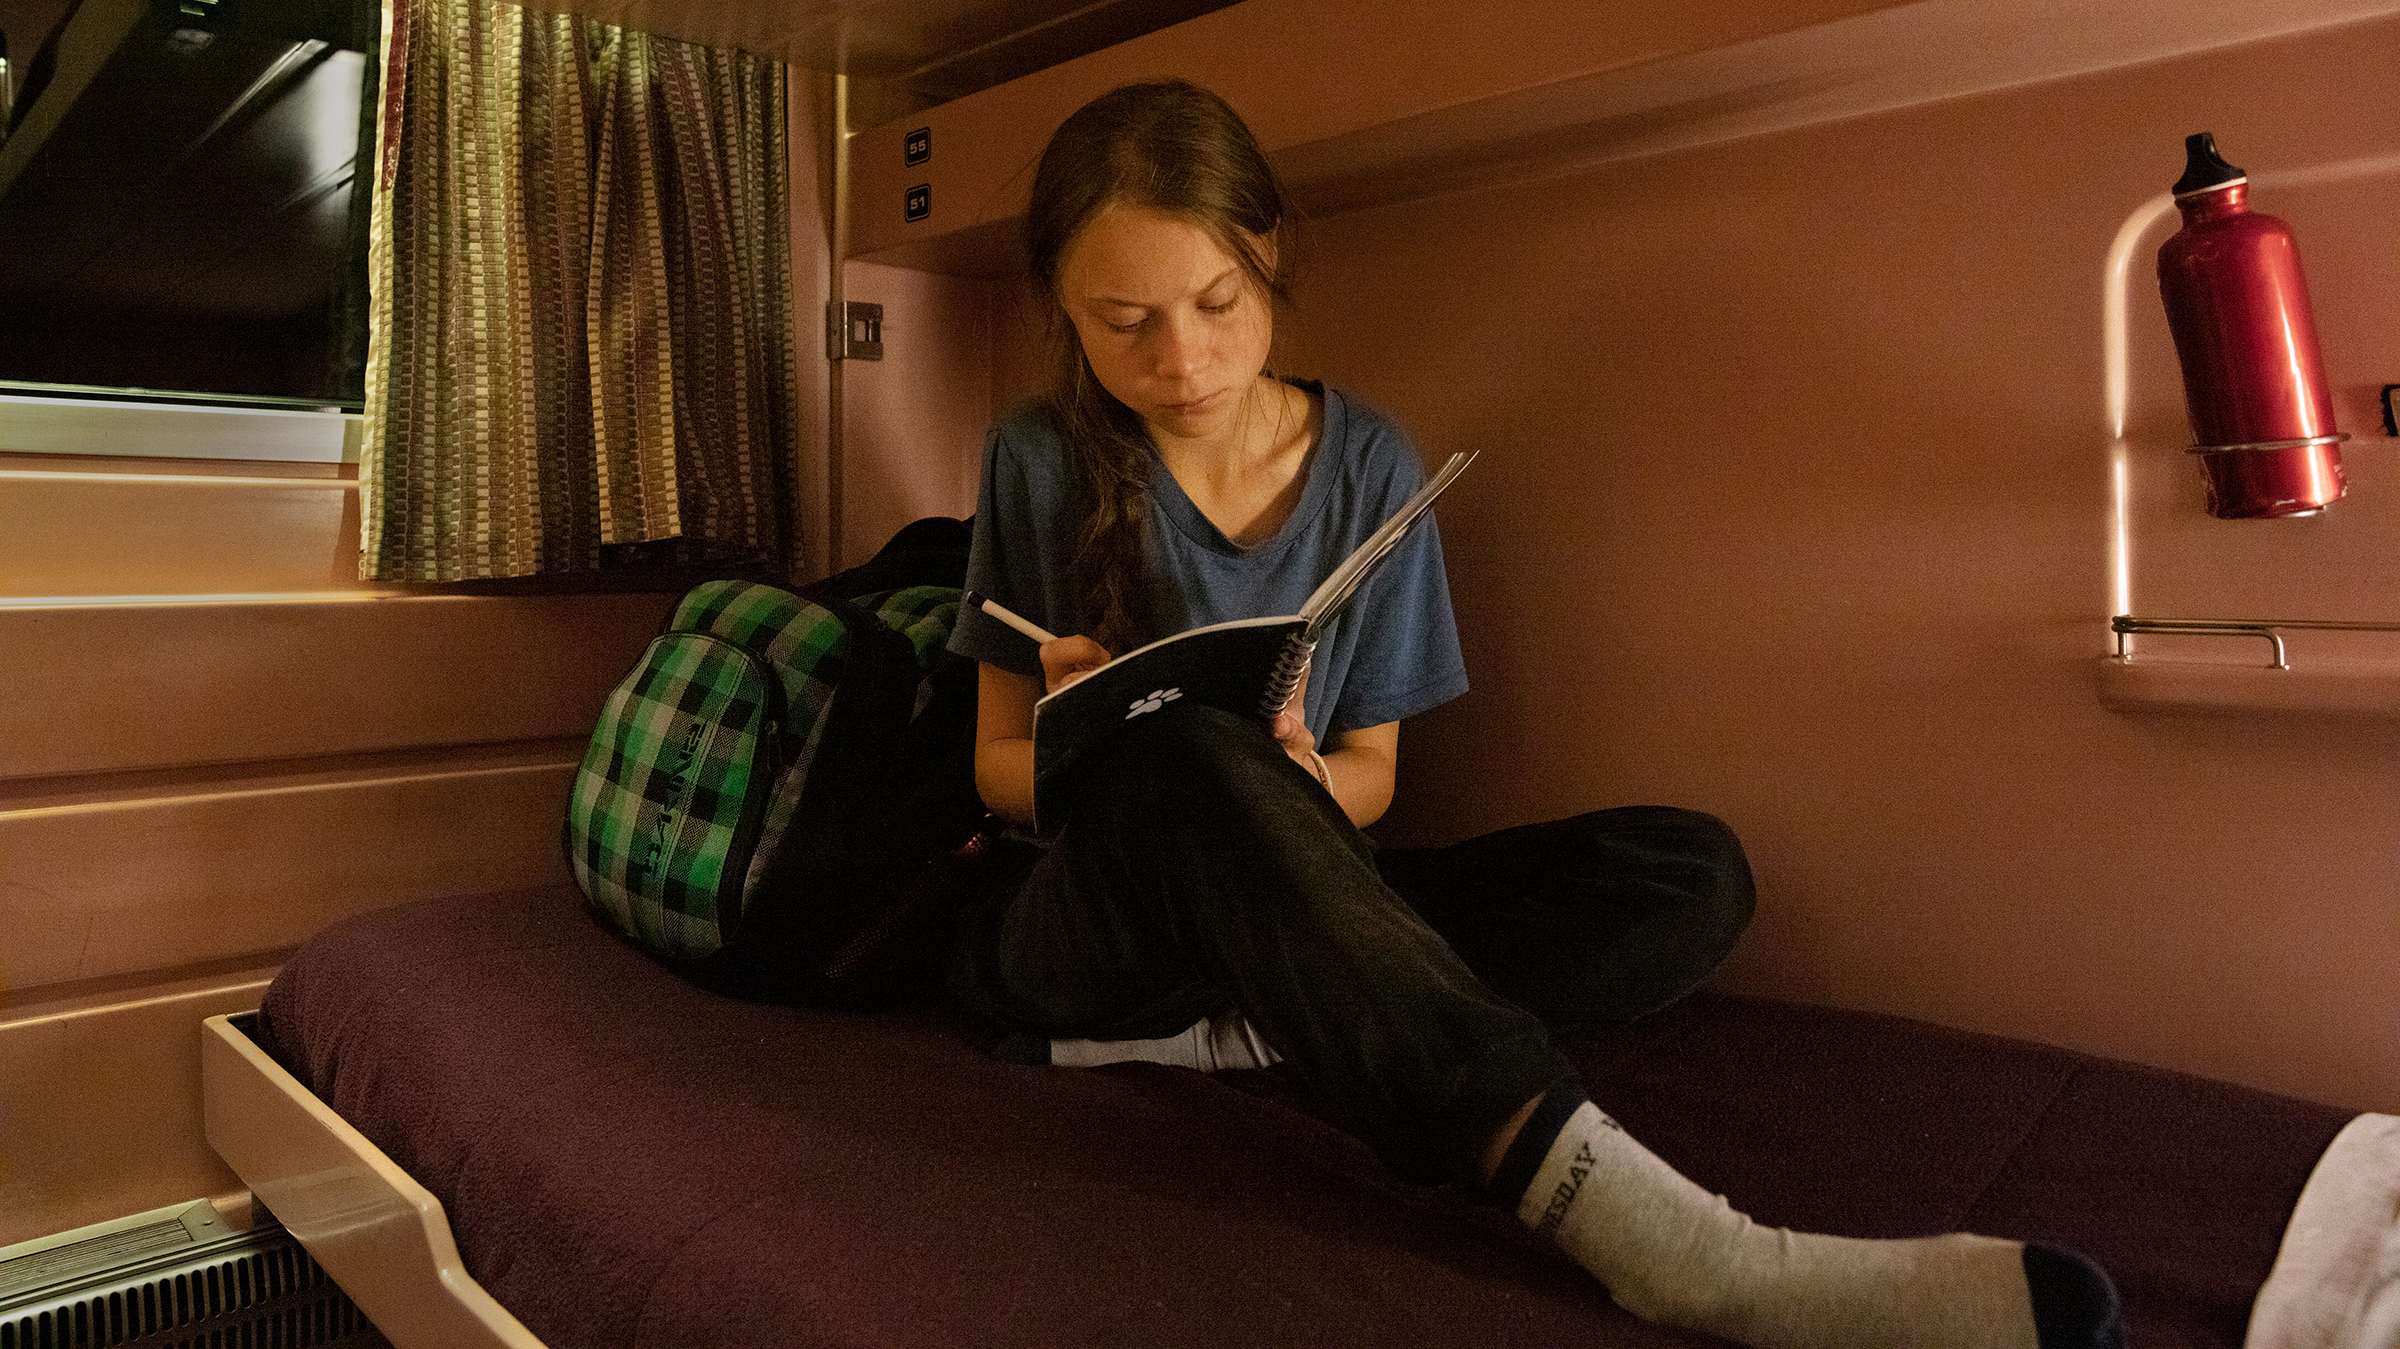 Greta Thunberg writes in her journal on the train as she travels from Lisbon to Madrid for a U.N. climate conference on Dec. 5, 2019.